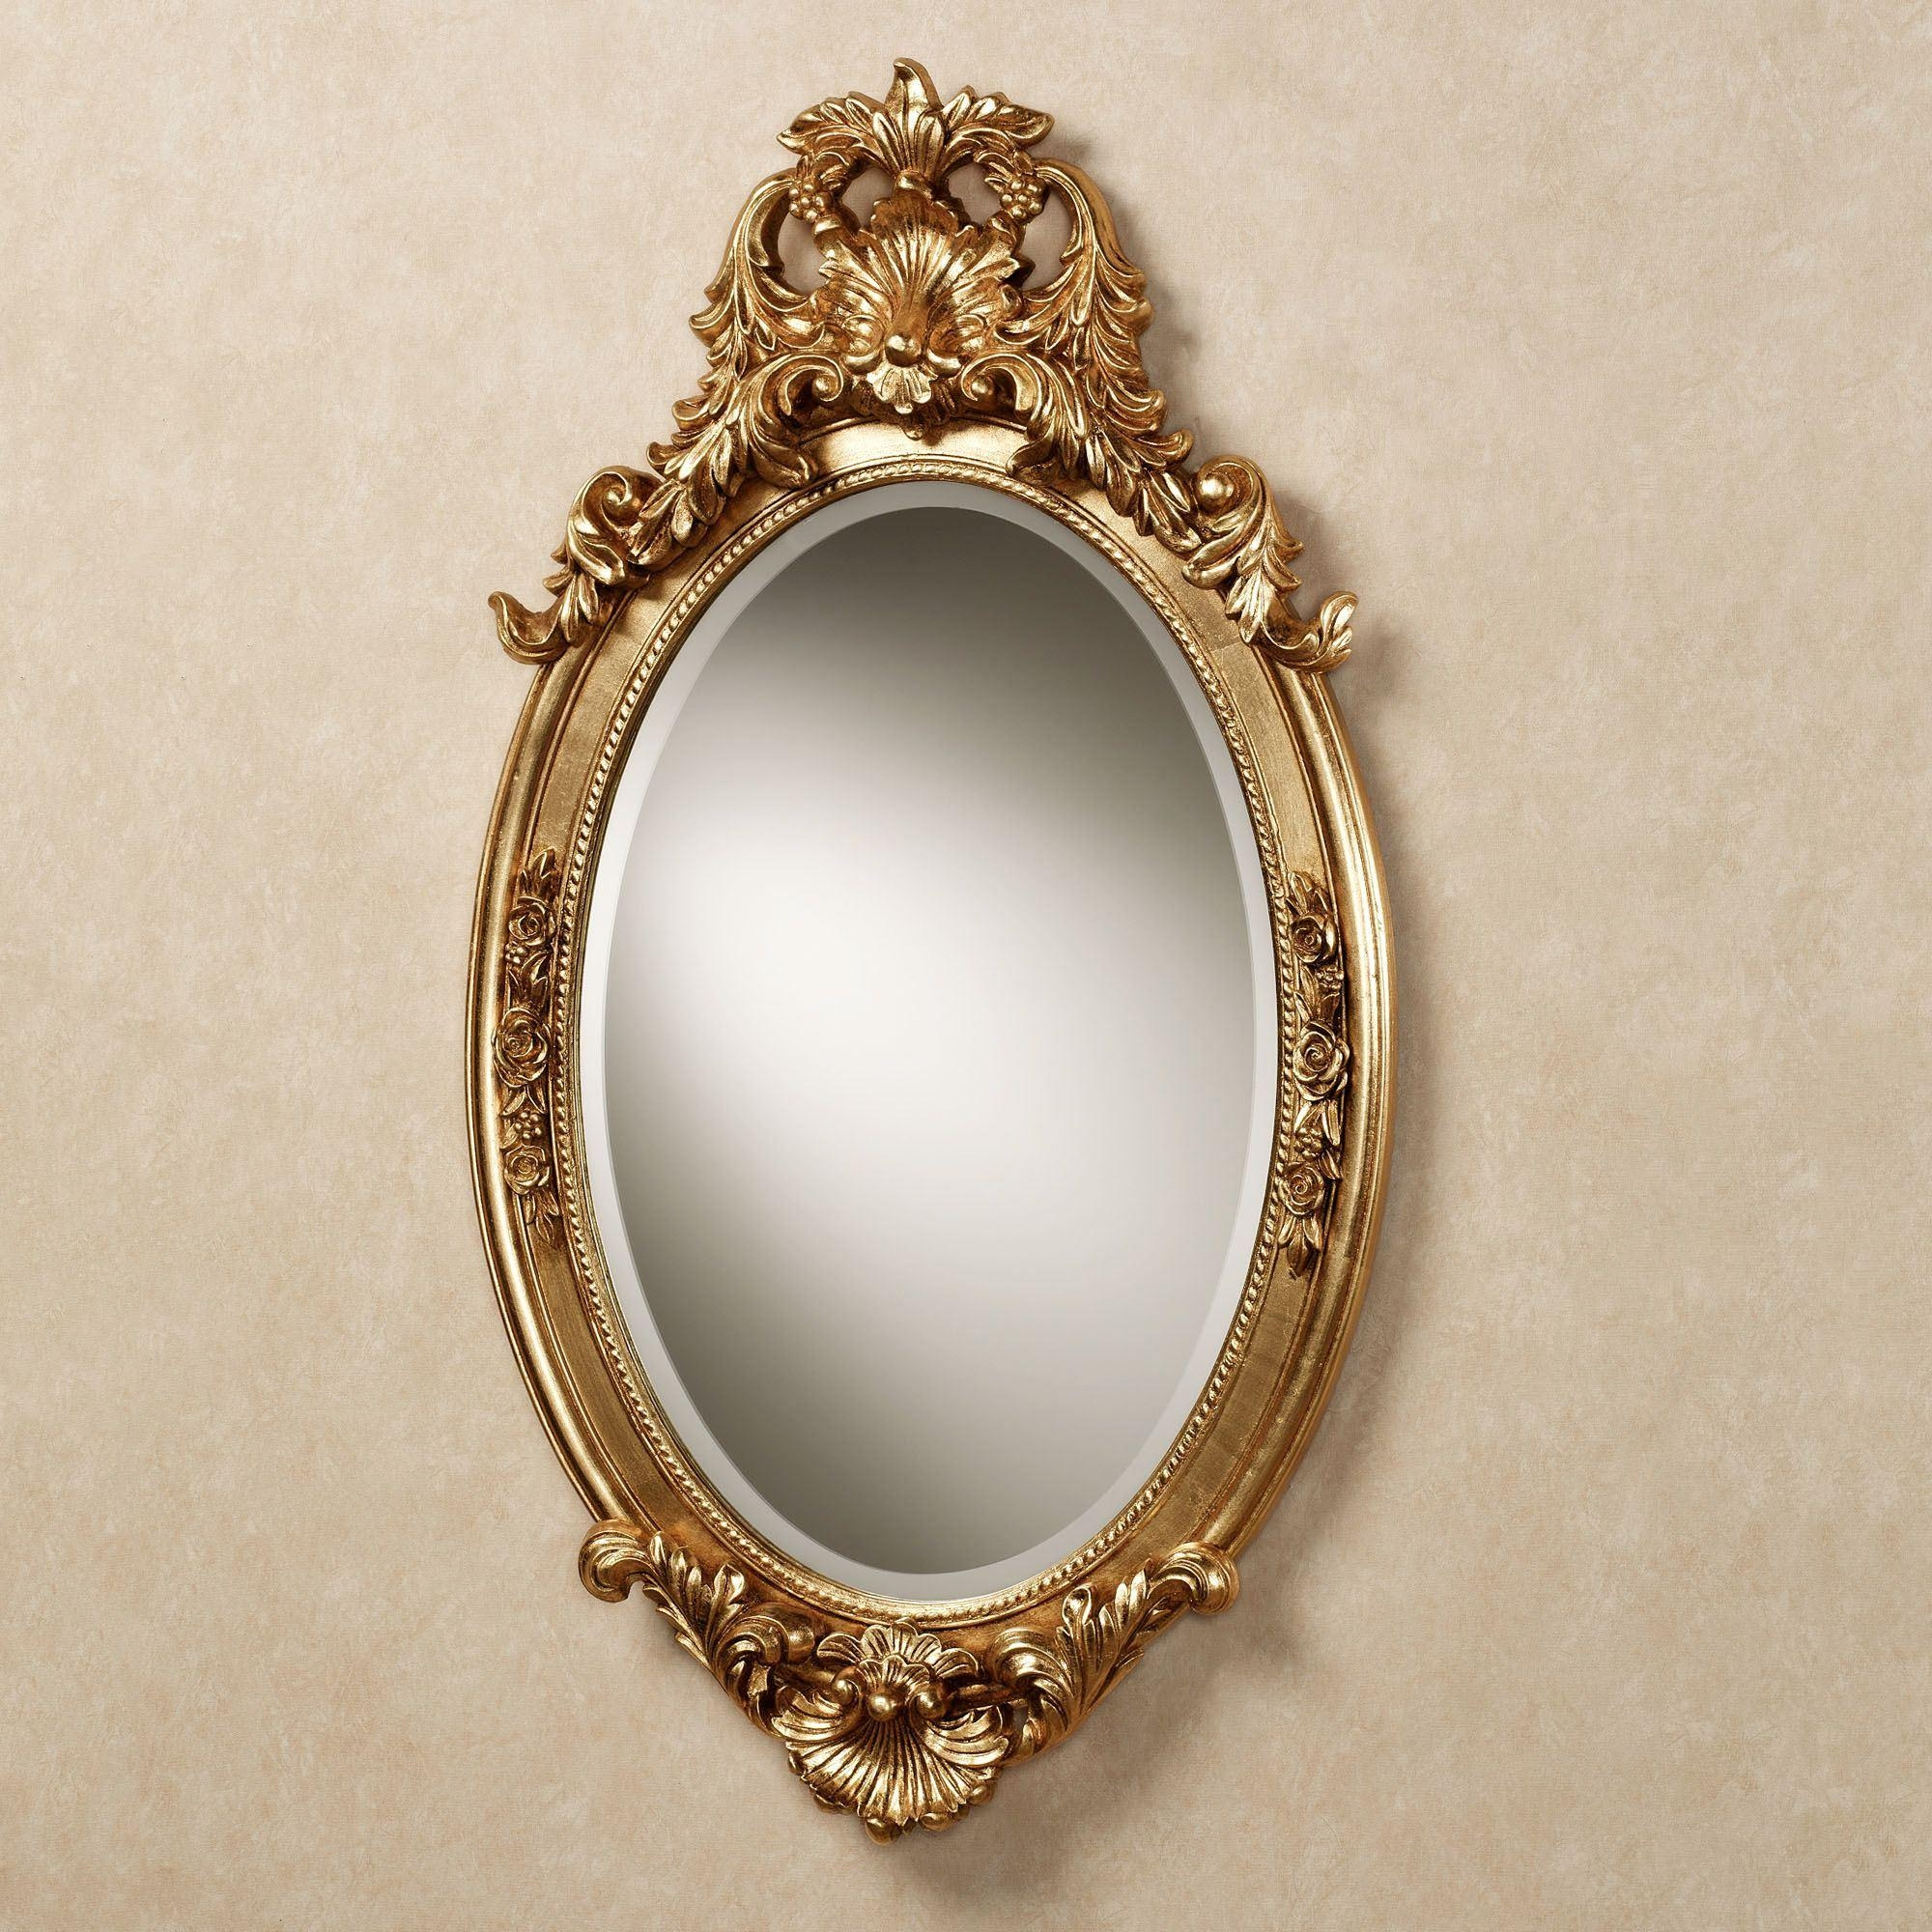 Hallandale Acanthus Leaf Oval Wall Mirror In Gold Wall Mirrors (Image 8 of 20)